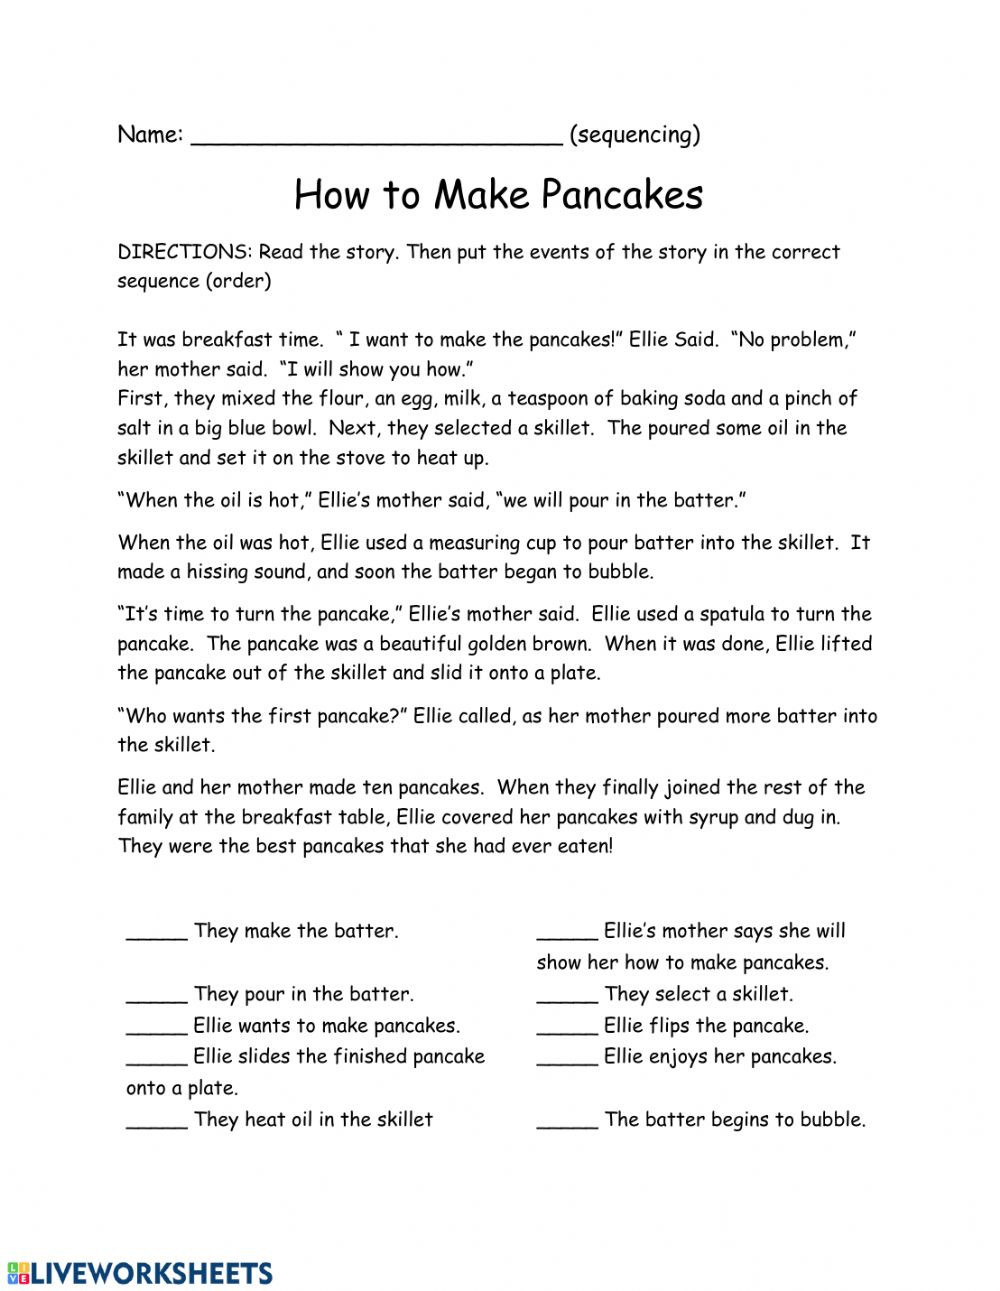 Sequence Worksheets 3rd Grade Sequence How to Make Pancakes Interactive Worksheet